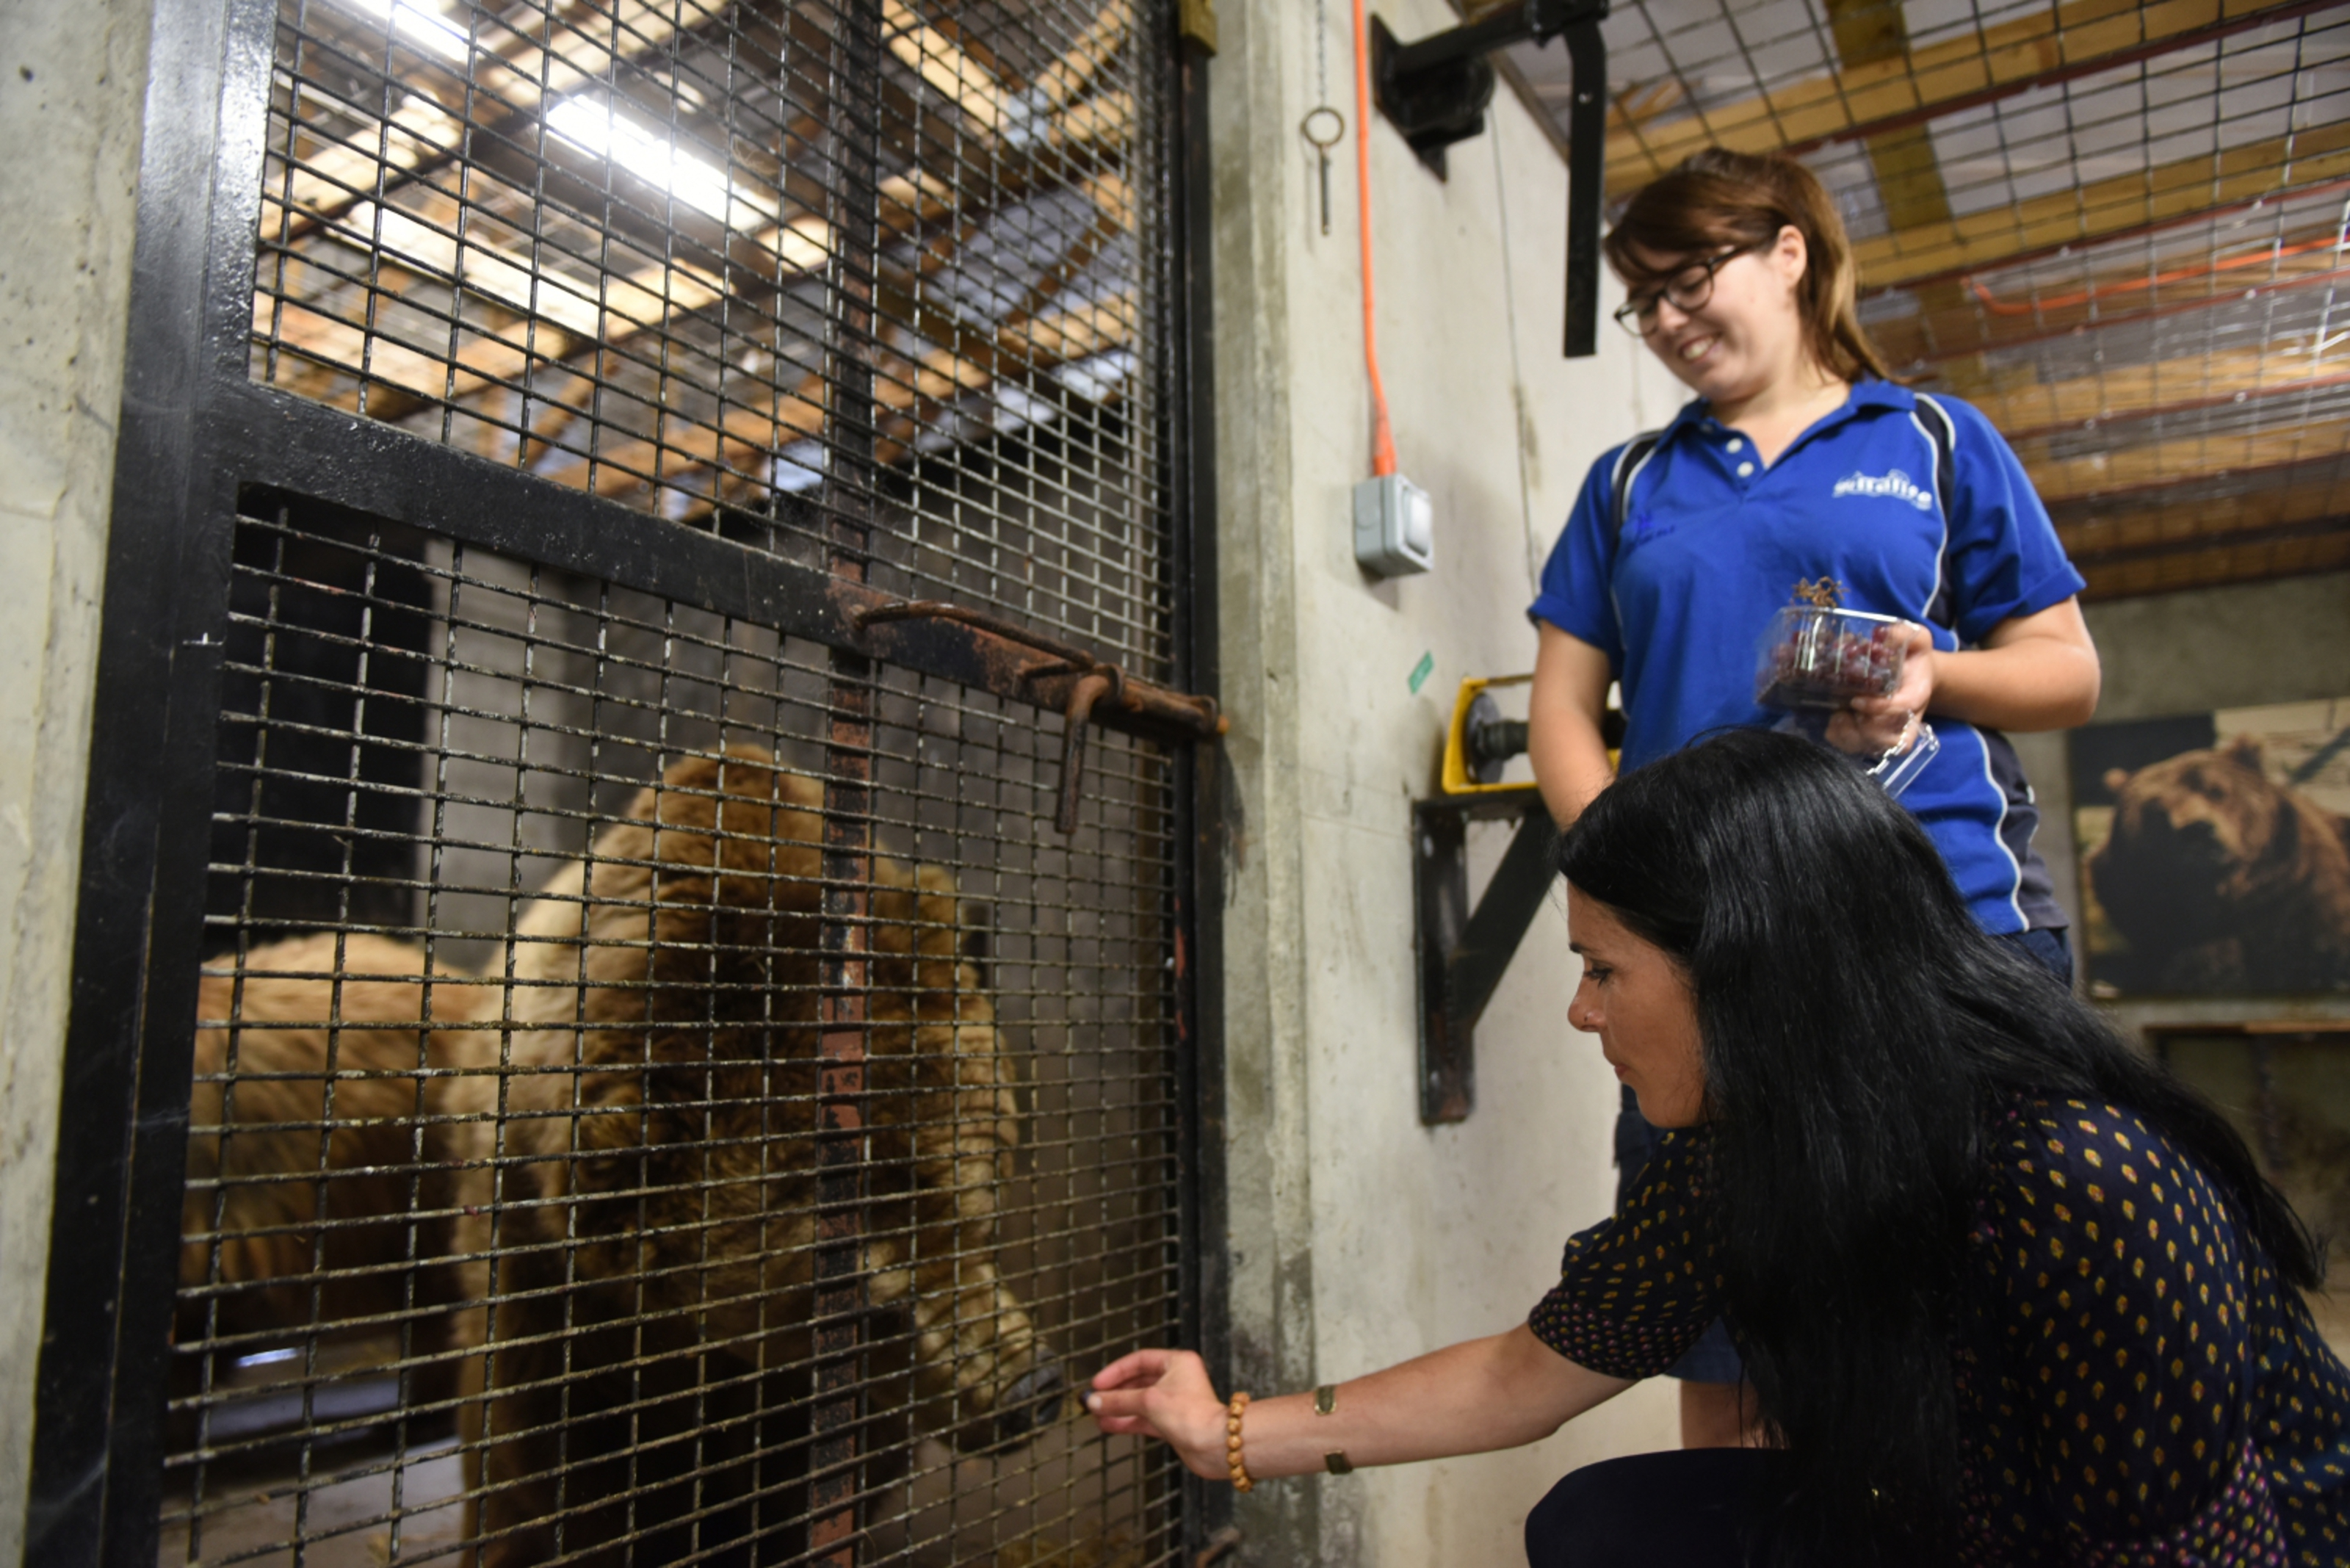 Gayle feeds grapes to Comet as keeper Lori McFadyen watches.